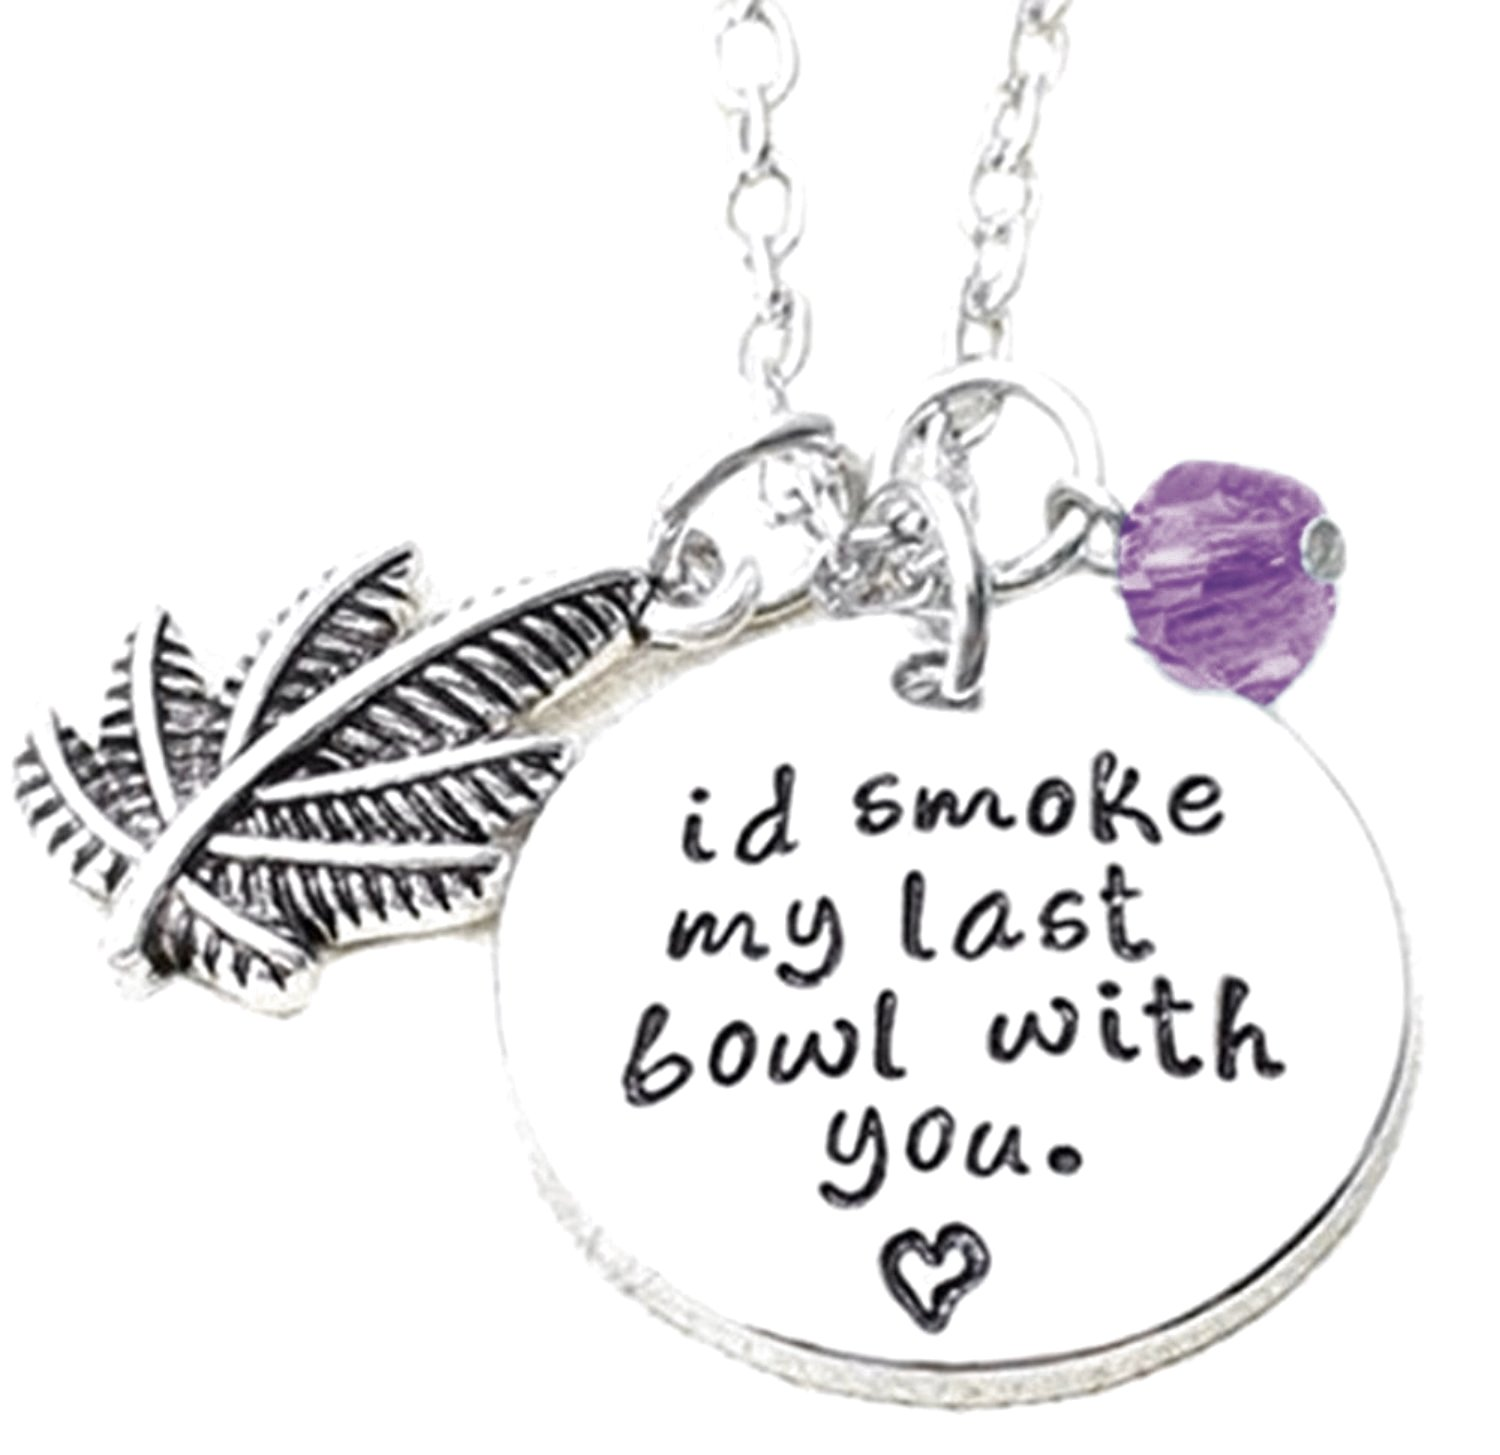 "'I'd Smoke My Last Bowl with You"" Inspirational Mantra Friendship Necklace BFF Best Friends Forever Besties Jewelry Gifts"